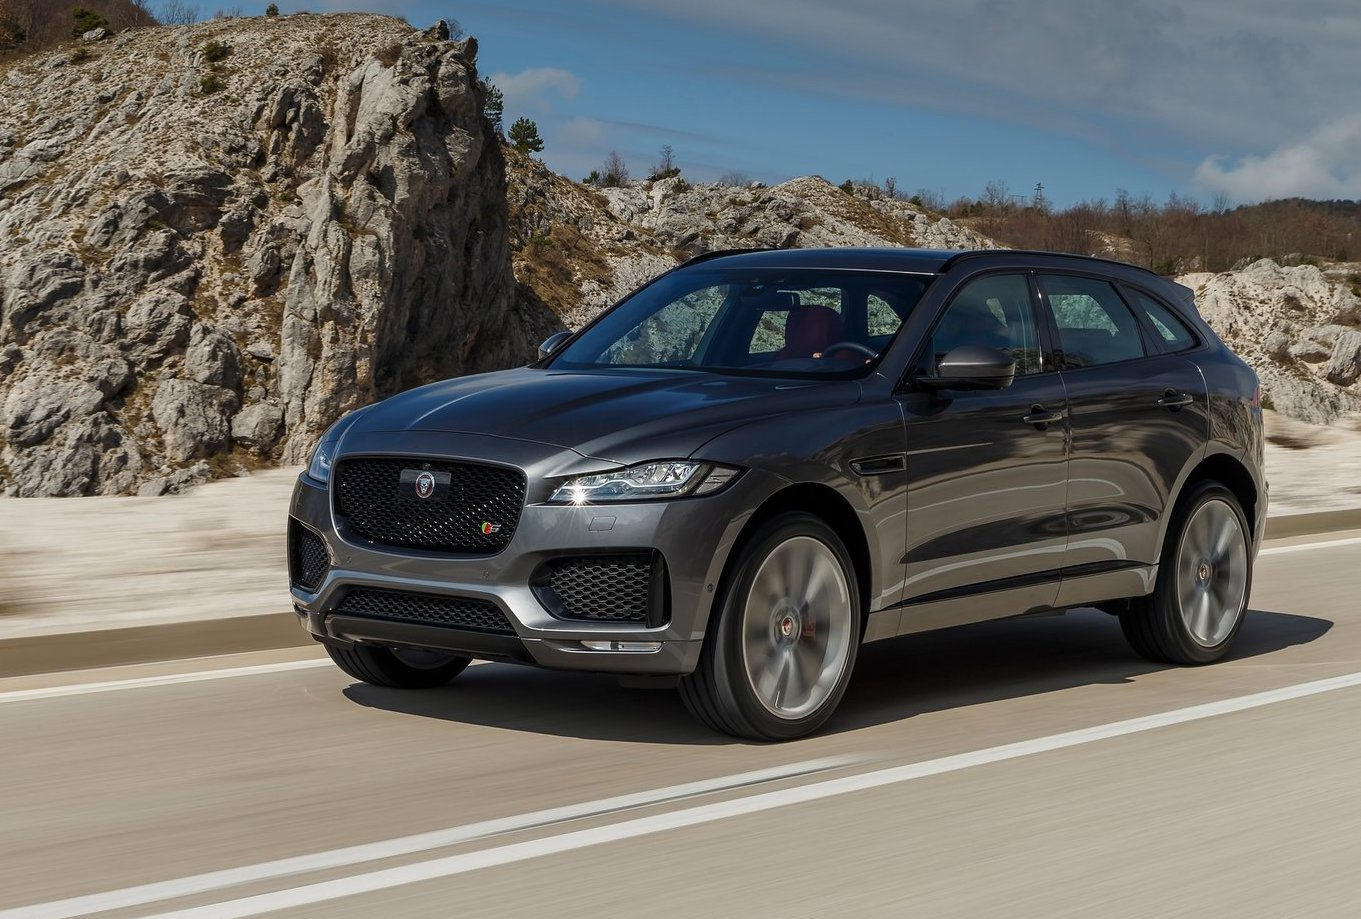 jaguar land rover sales keep soaring led by f pace suv performancedrive. Black Bedroom Furniture Sets. Home Design Ideas